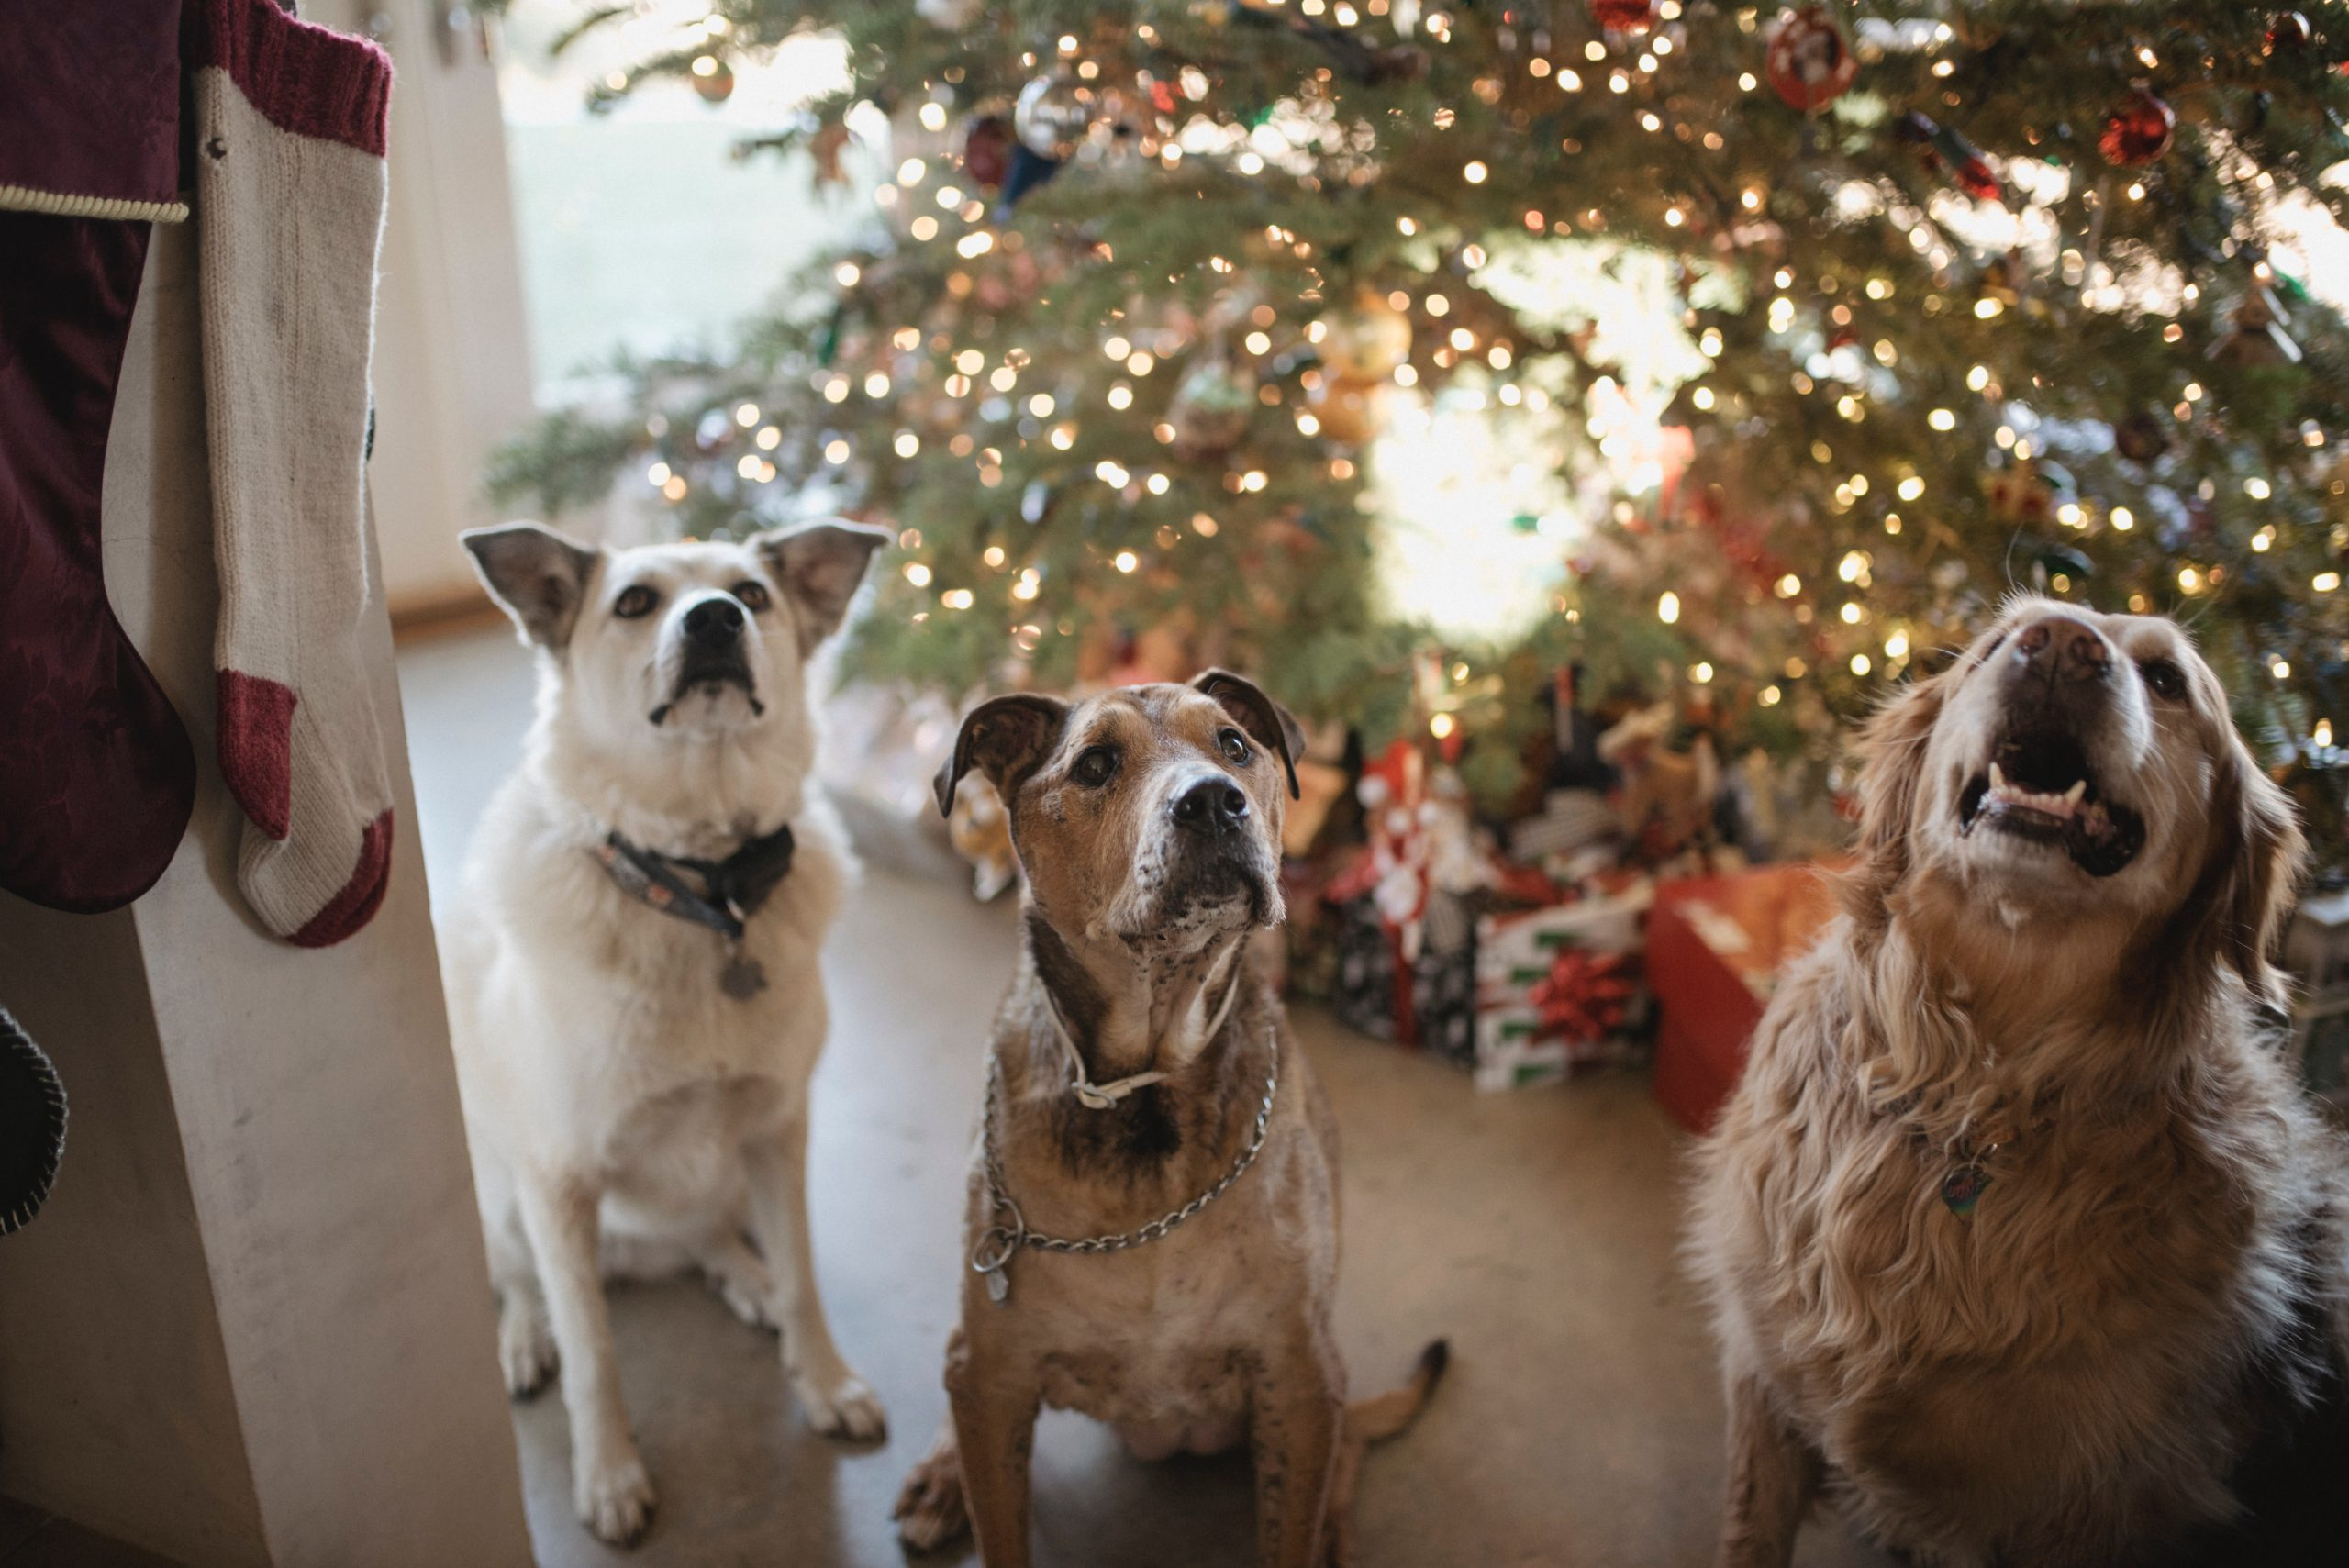 Stocking stuffers for dogs, dogs with stockings